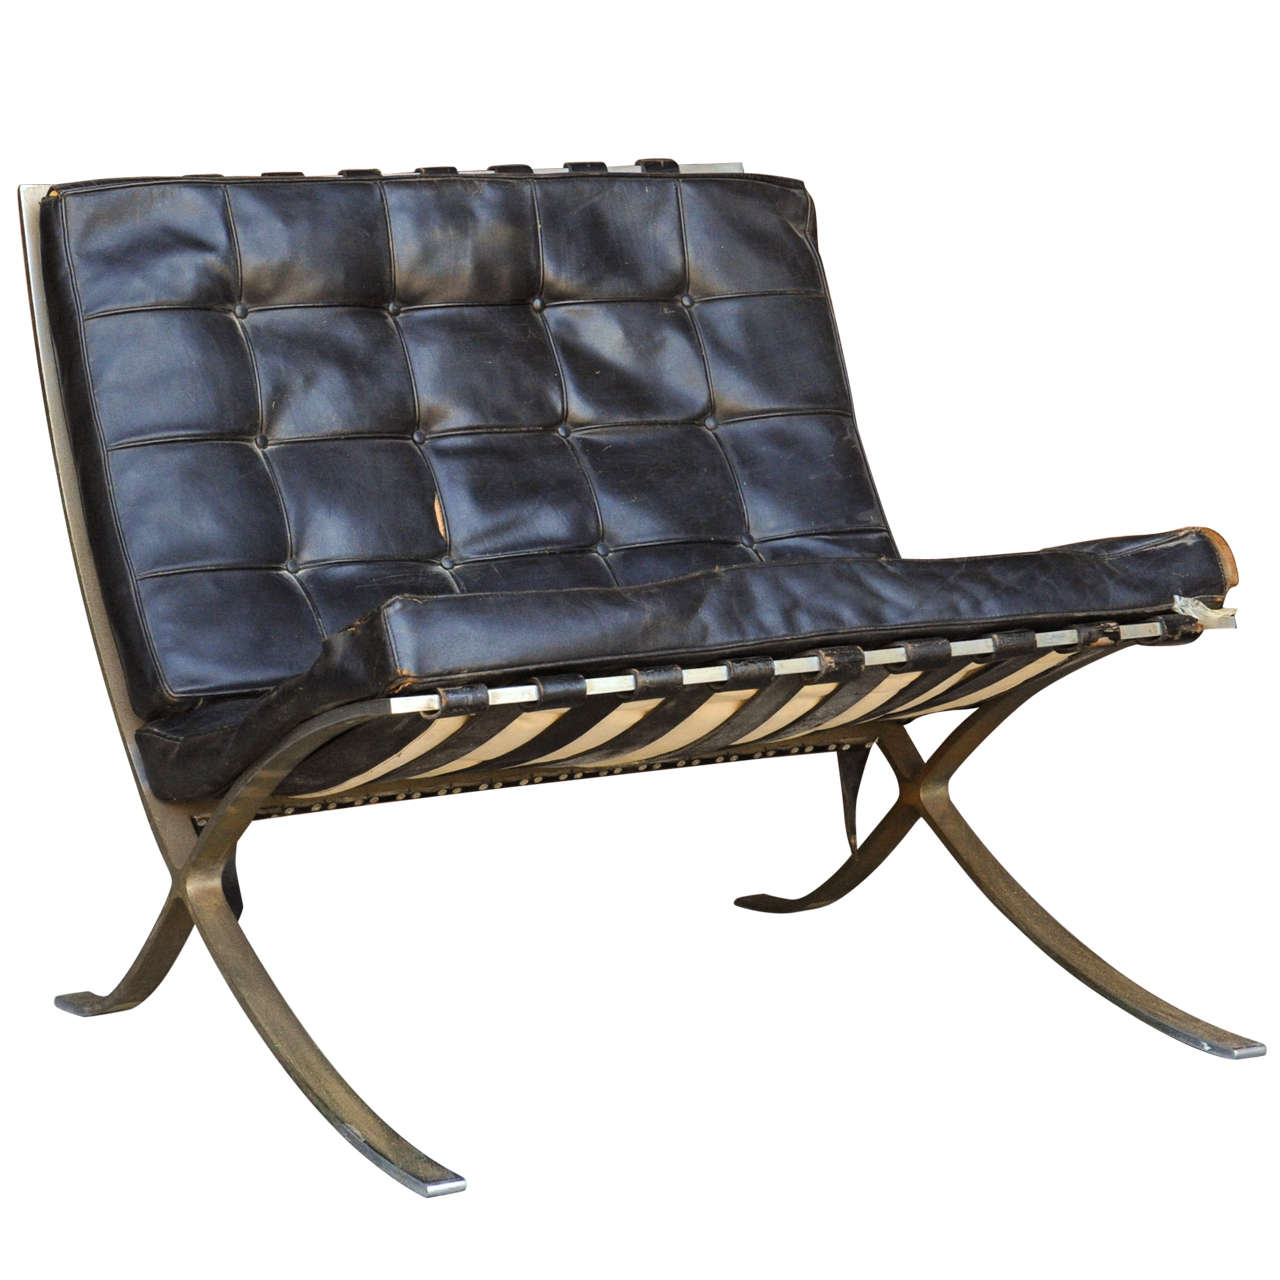 unrestored 50ies Barcelona chair by Mies van der Rohe